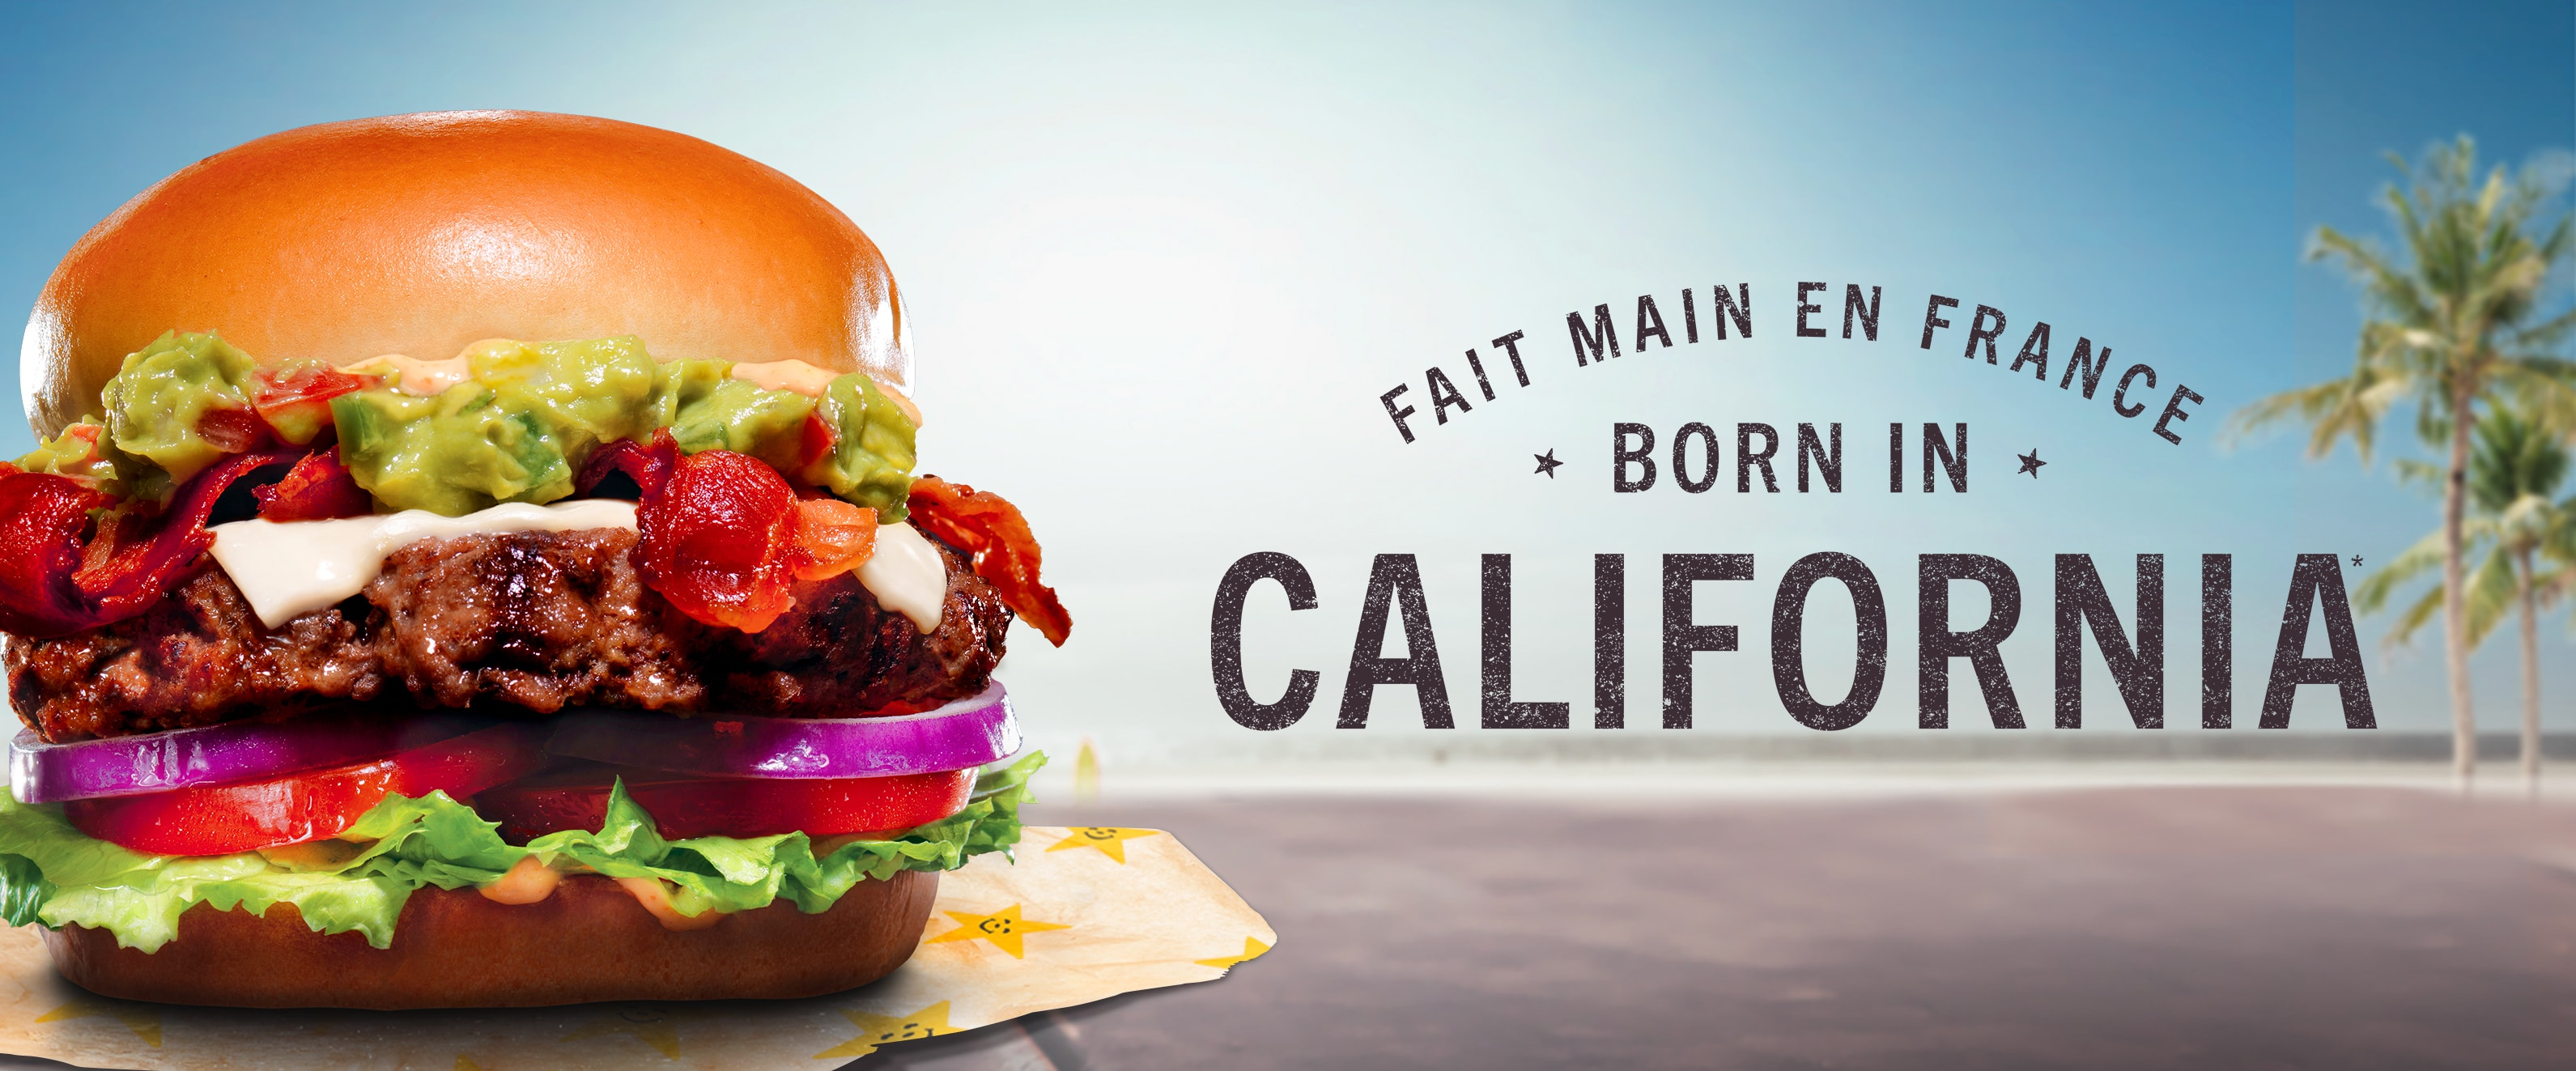 Fait main en France * Born in * CALIFORNIA